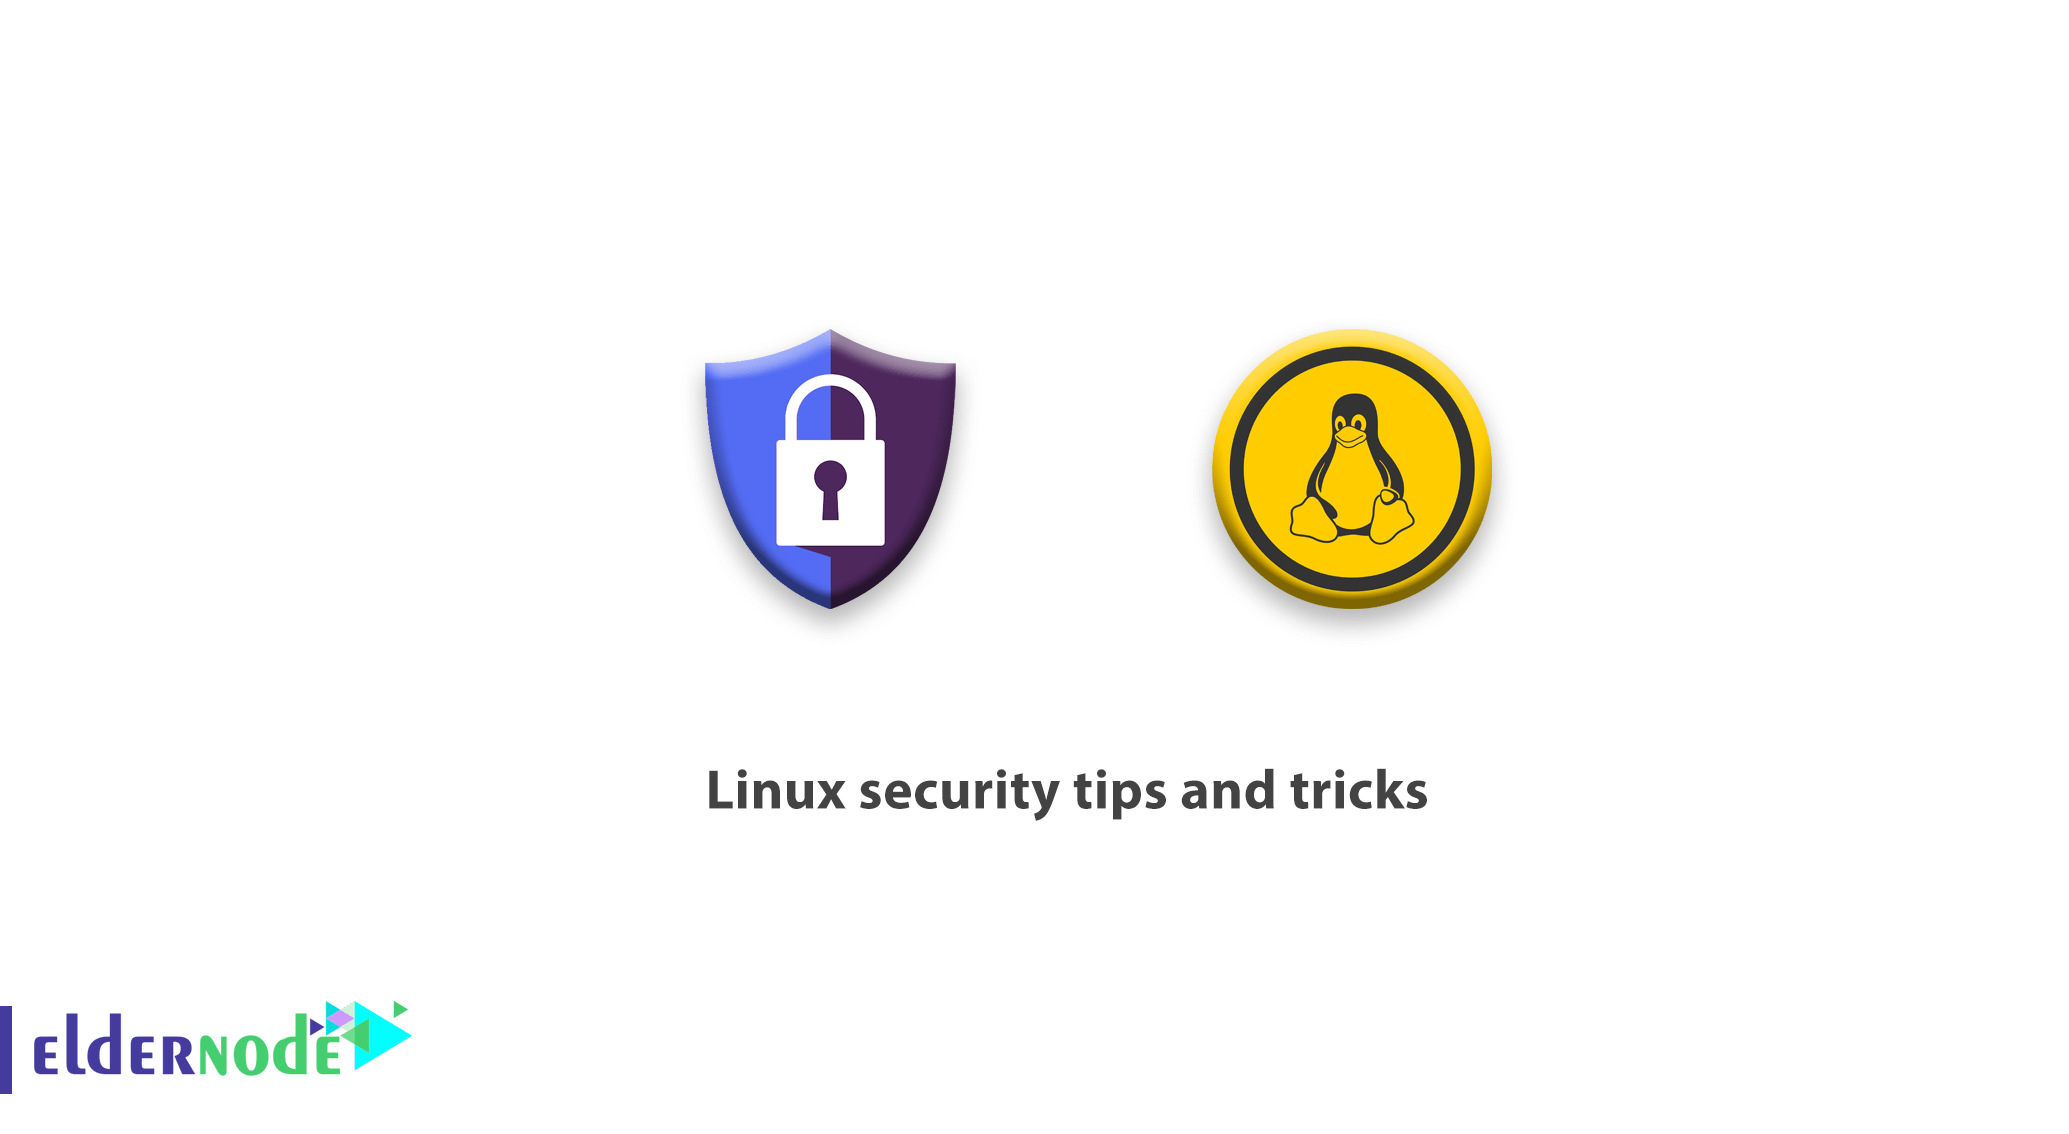 Linux security tips and tricks